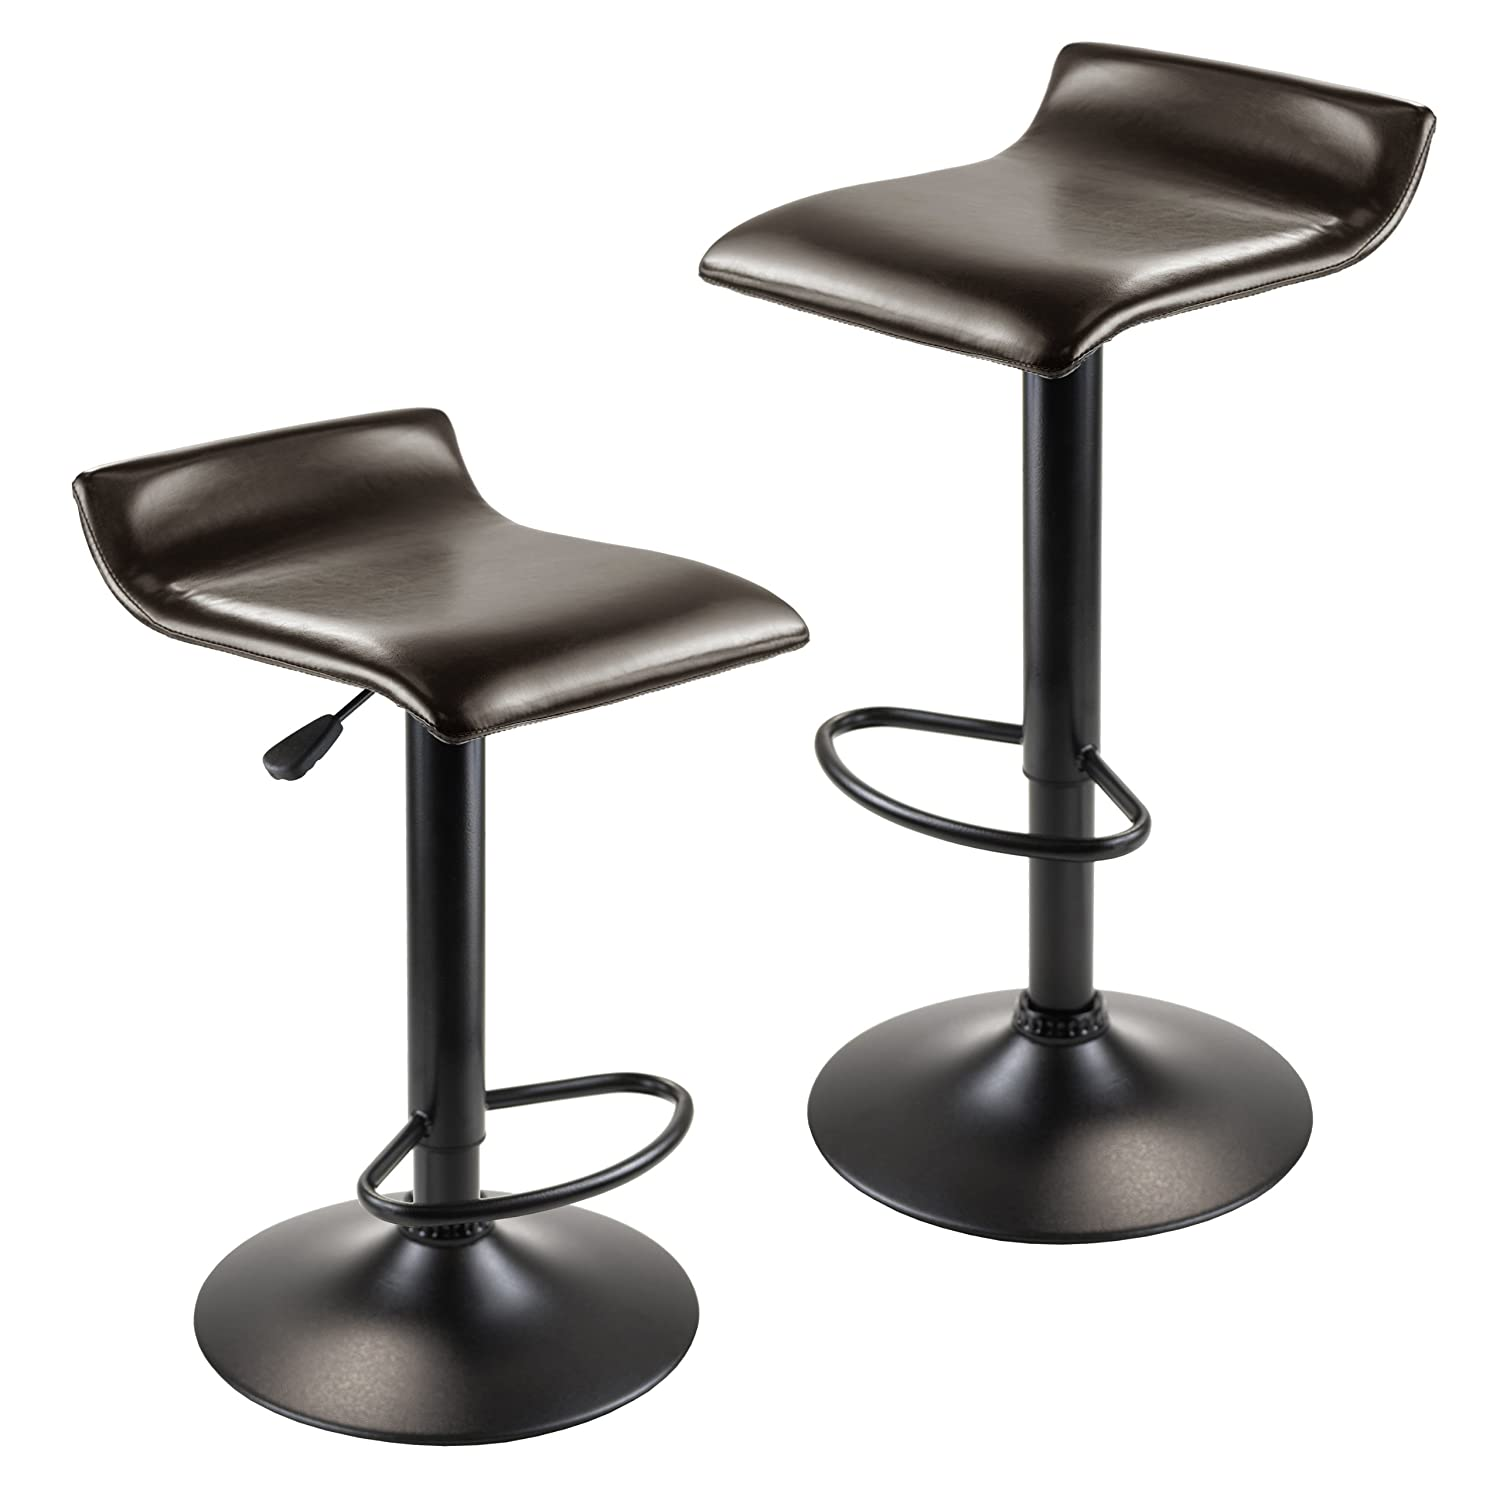 Winsome Wood Paris Adjustable Swivel Airlift Stool with PU Leather Seat, Black Metal Base, Set of 2 93232